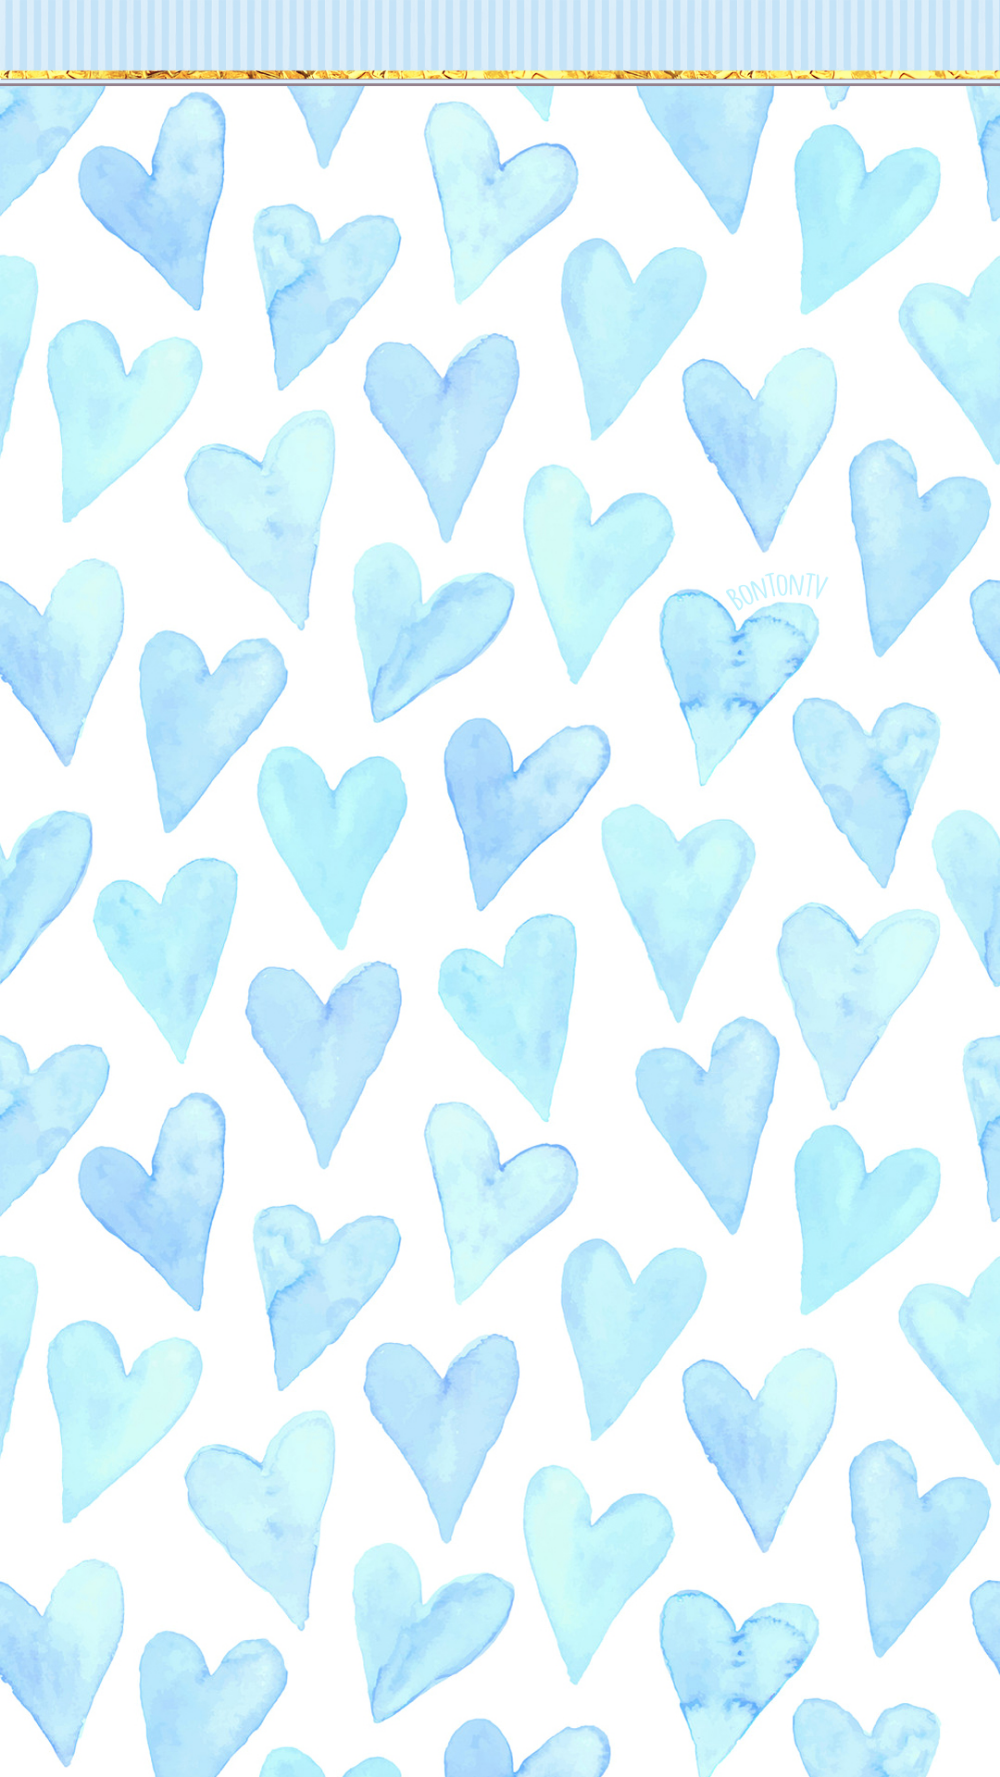 Phone Wallpapers Hd Blue Hearts Simplistic By Bonton Tv Free Backgrounds 1080x1920 Wallpa Cute Patterns Wallpaper Pretty Wallpaper Iphone Phone Wallpaper